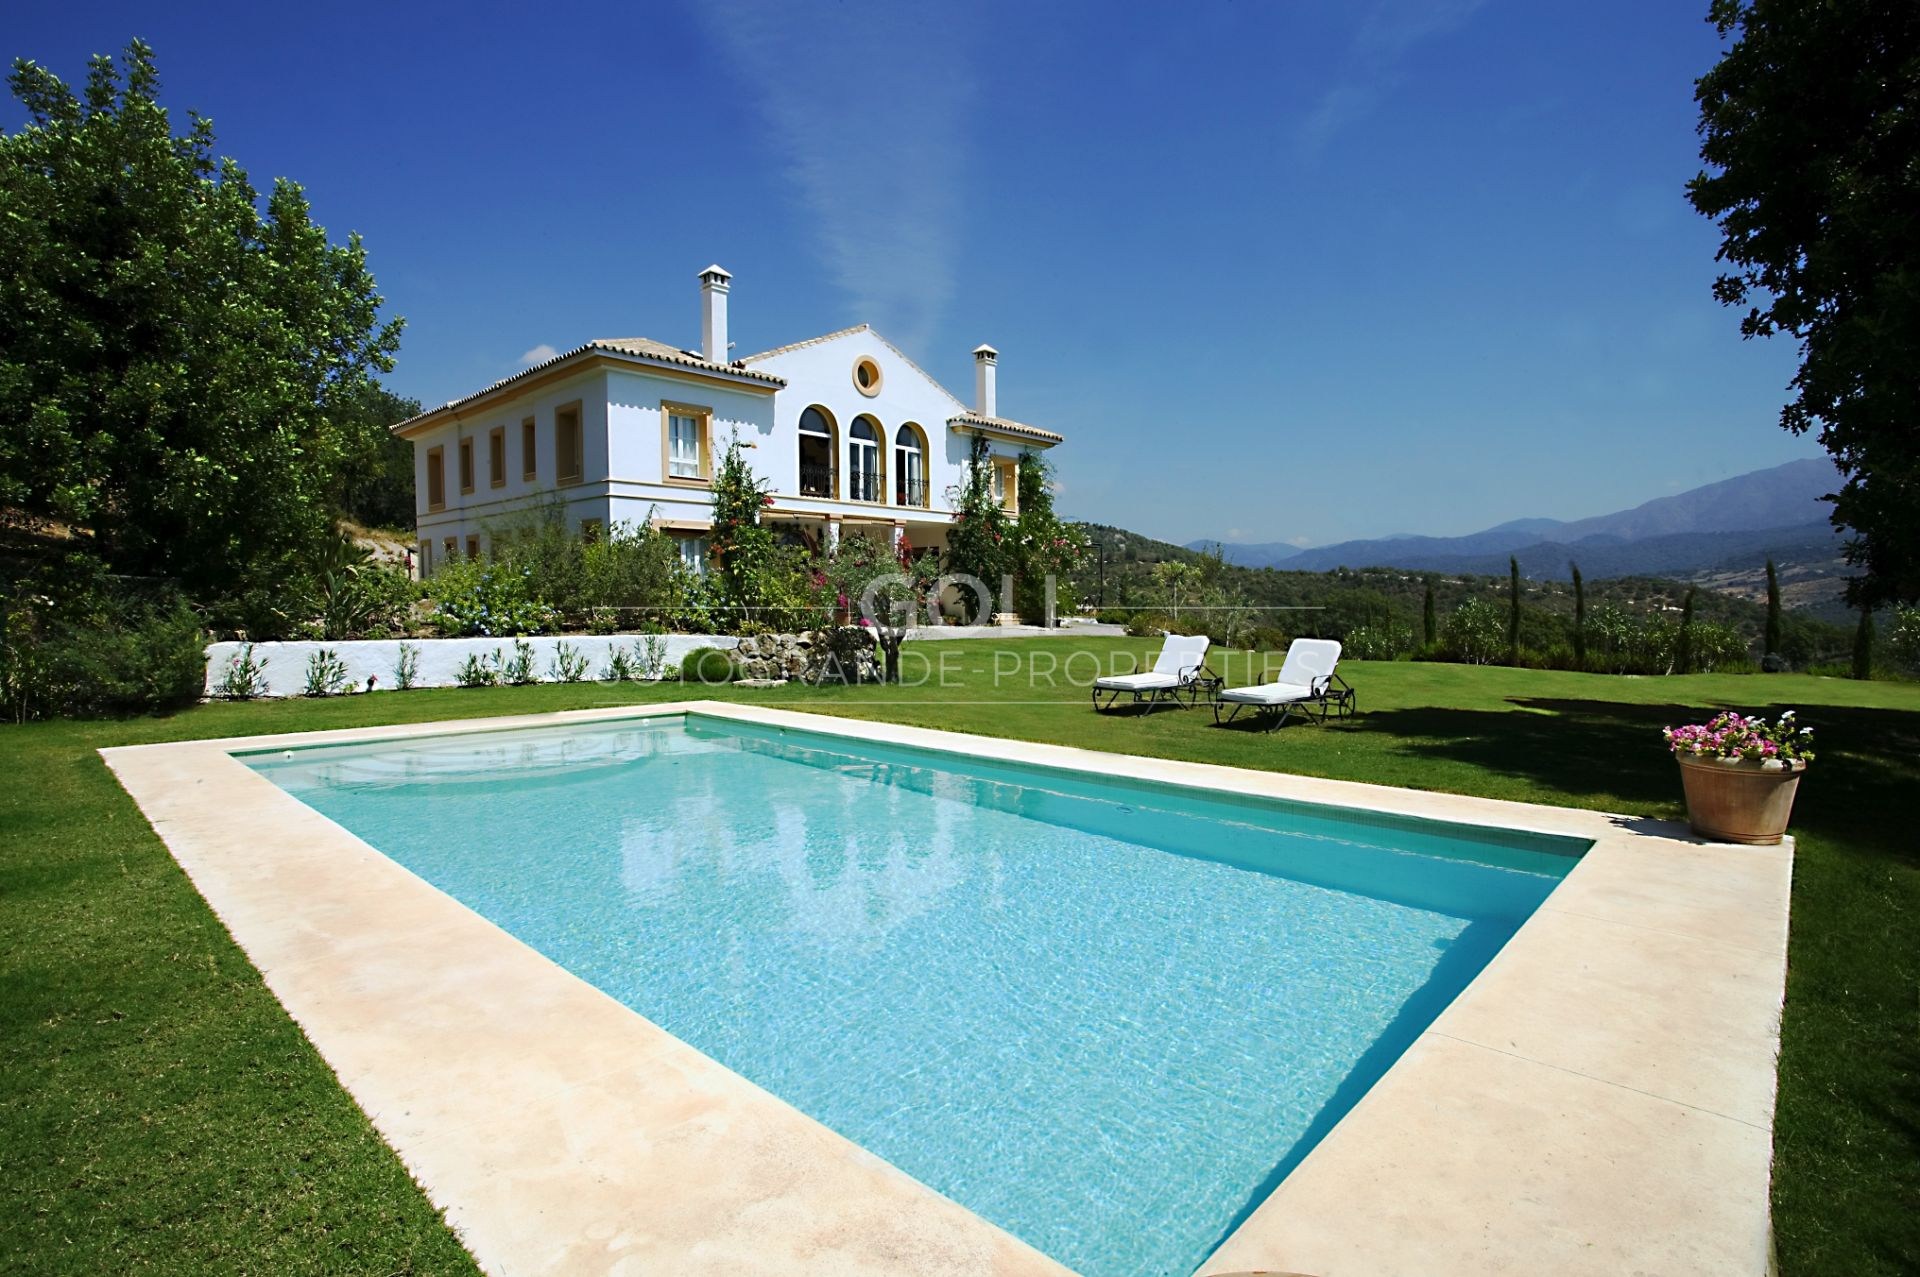 Stunning country house near Gaucin with majestic views